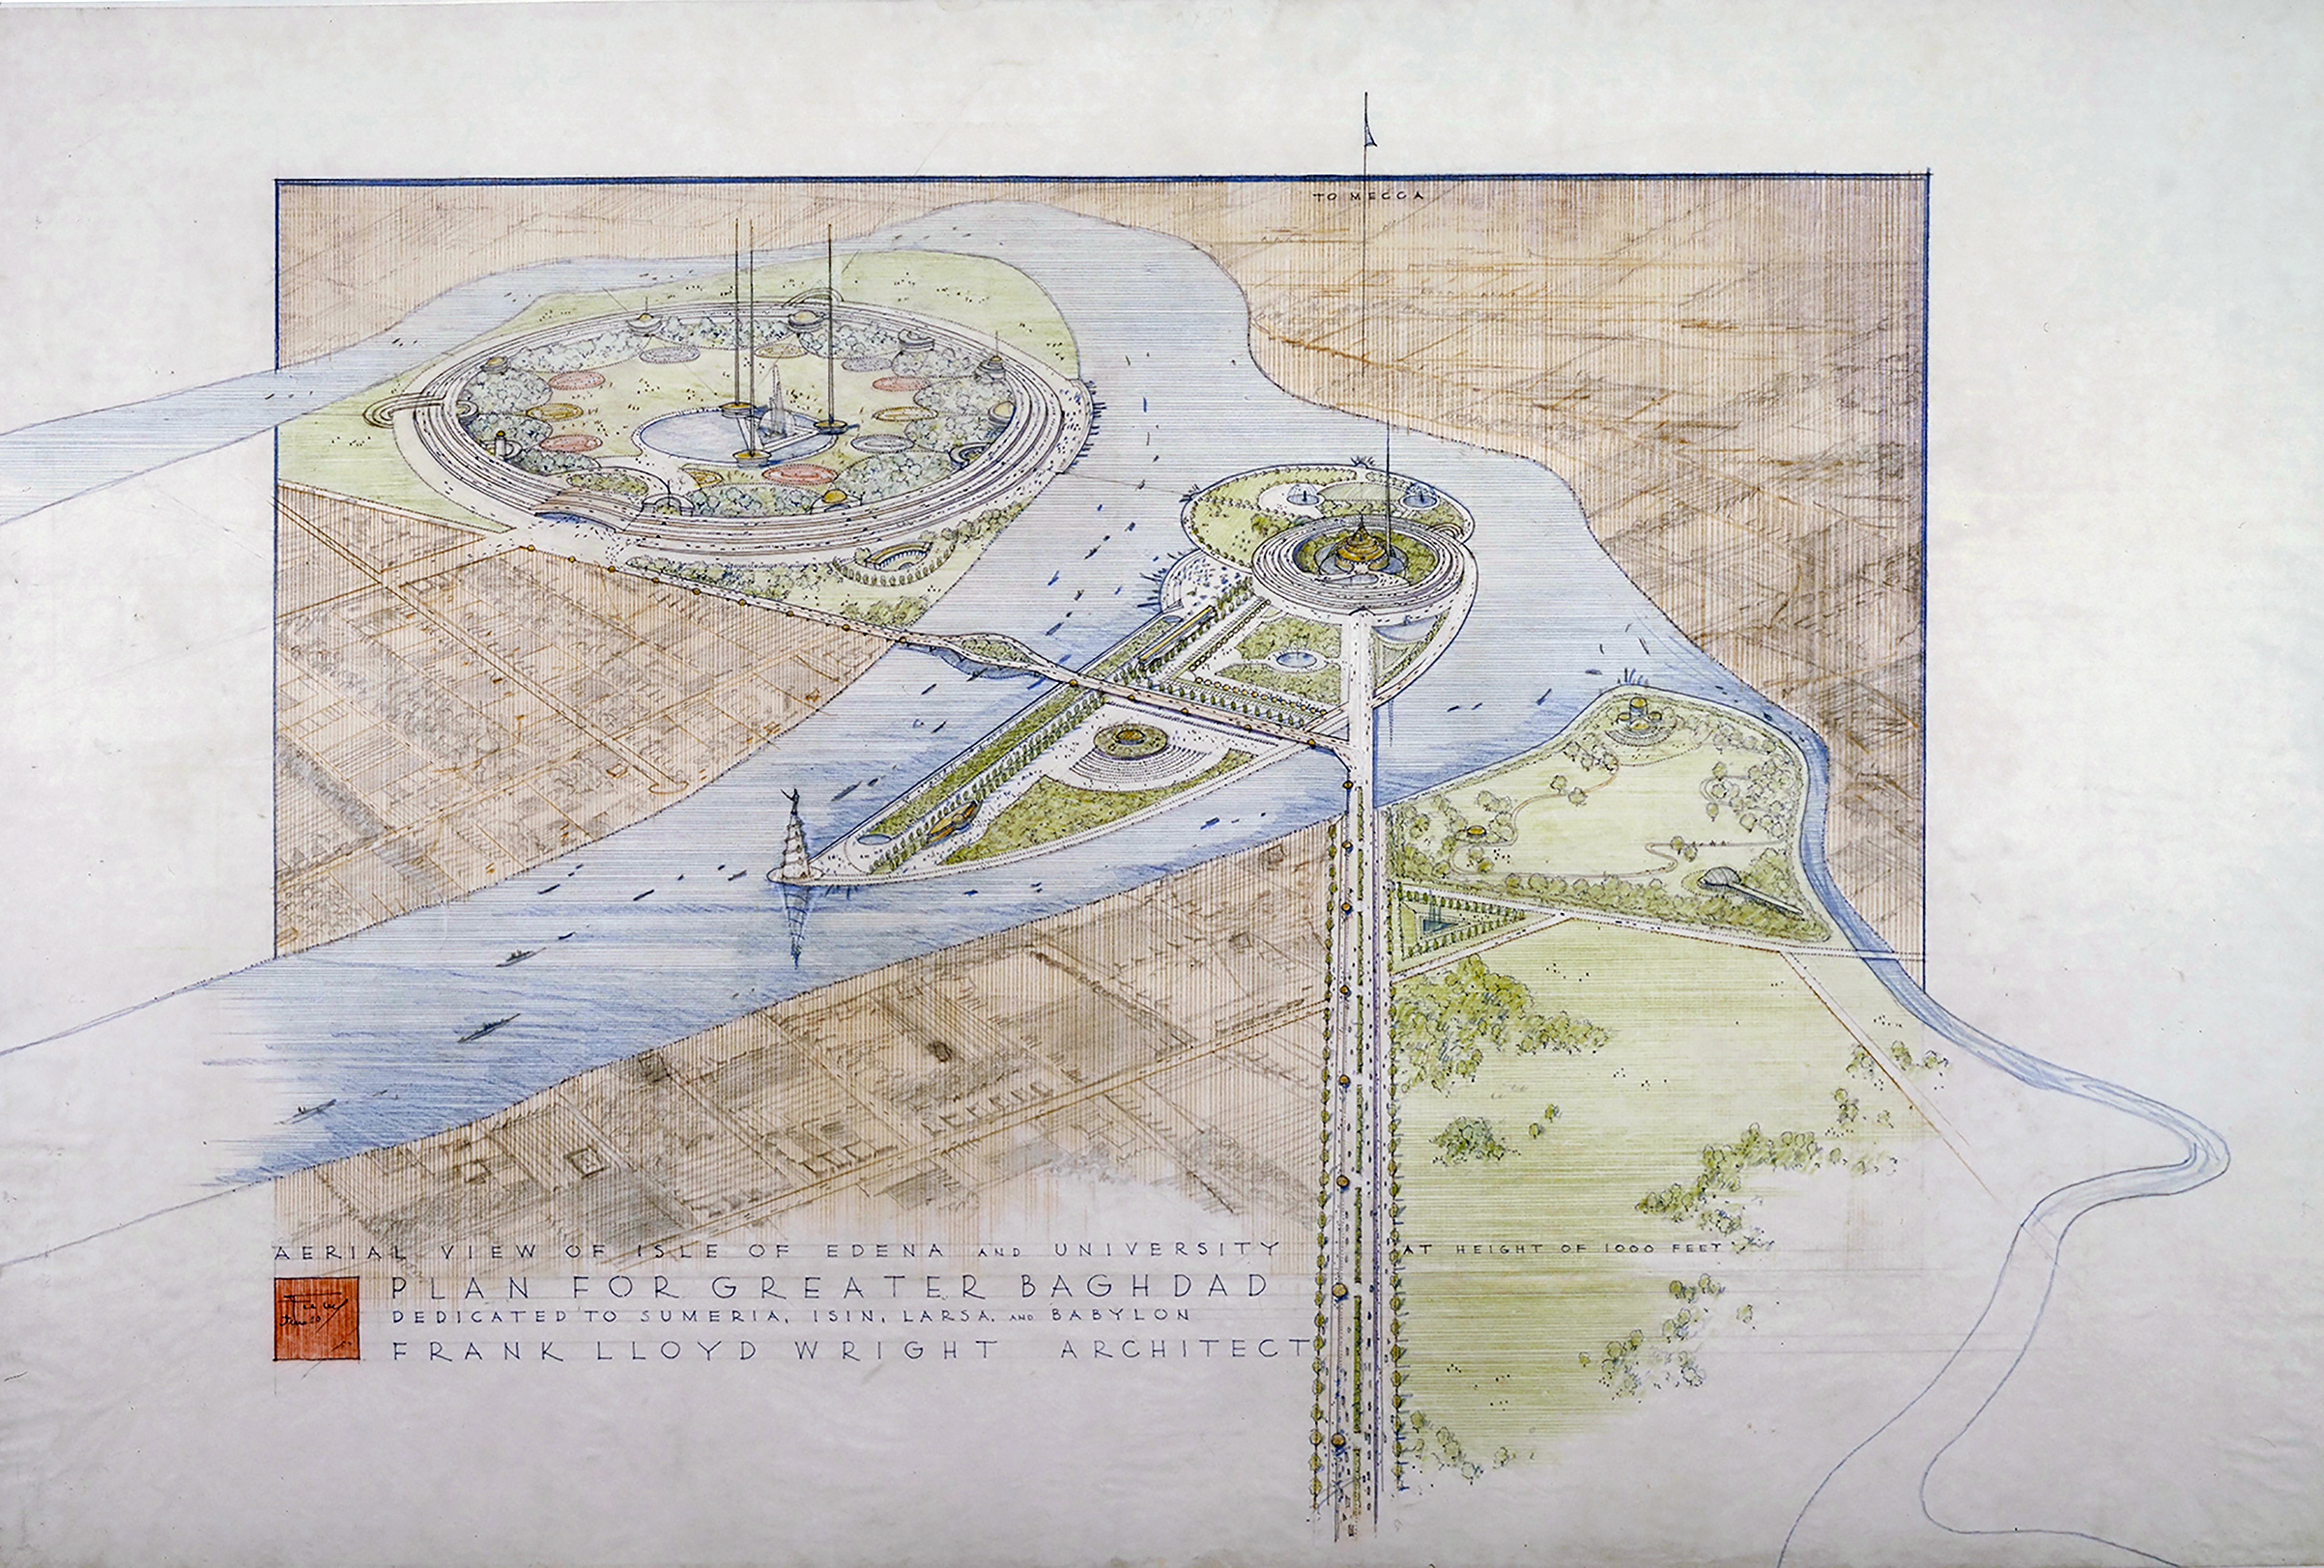 Frank Lloyd Wright (American, 1867–1959). Plan for Greater Baghdad. Unbuilt project. 1957-58.